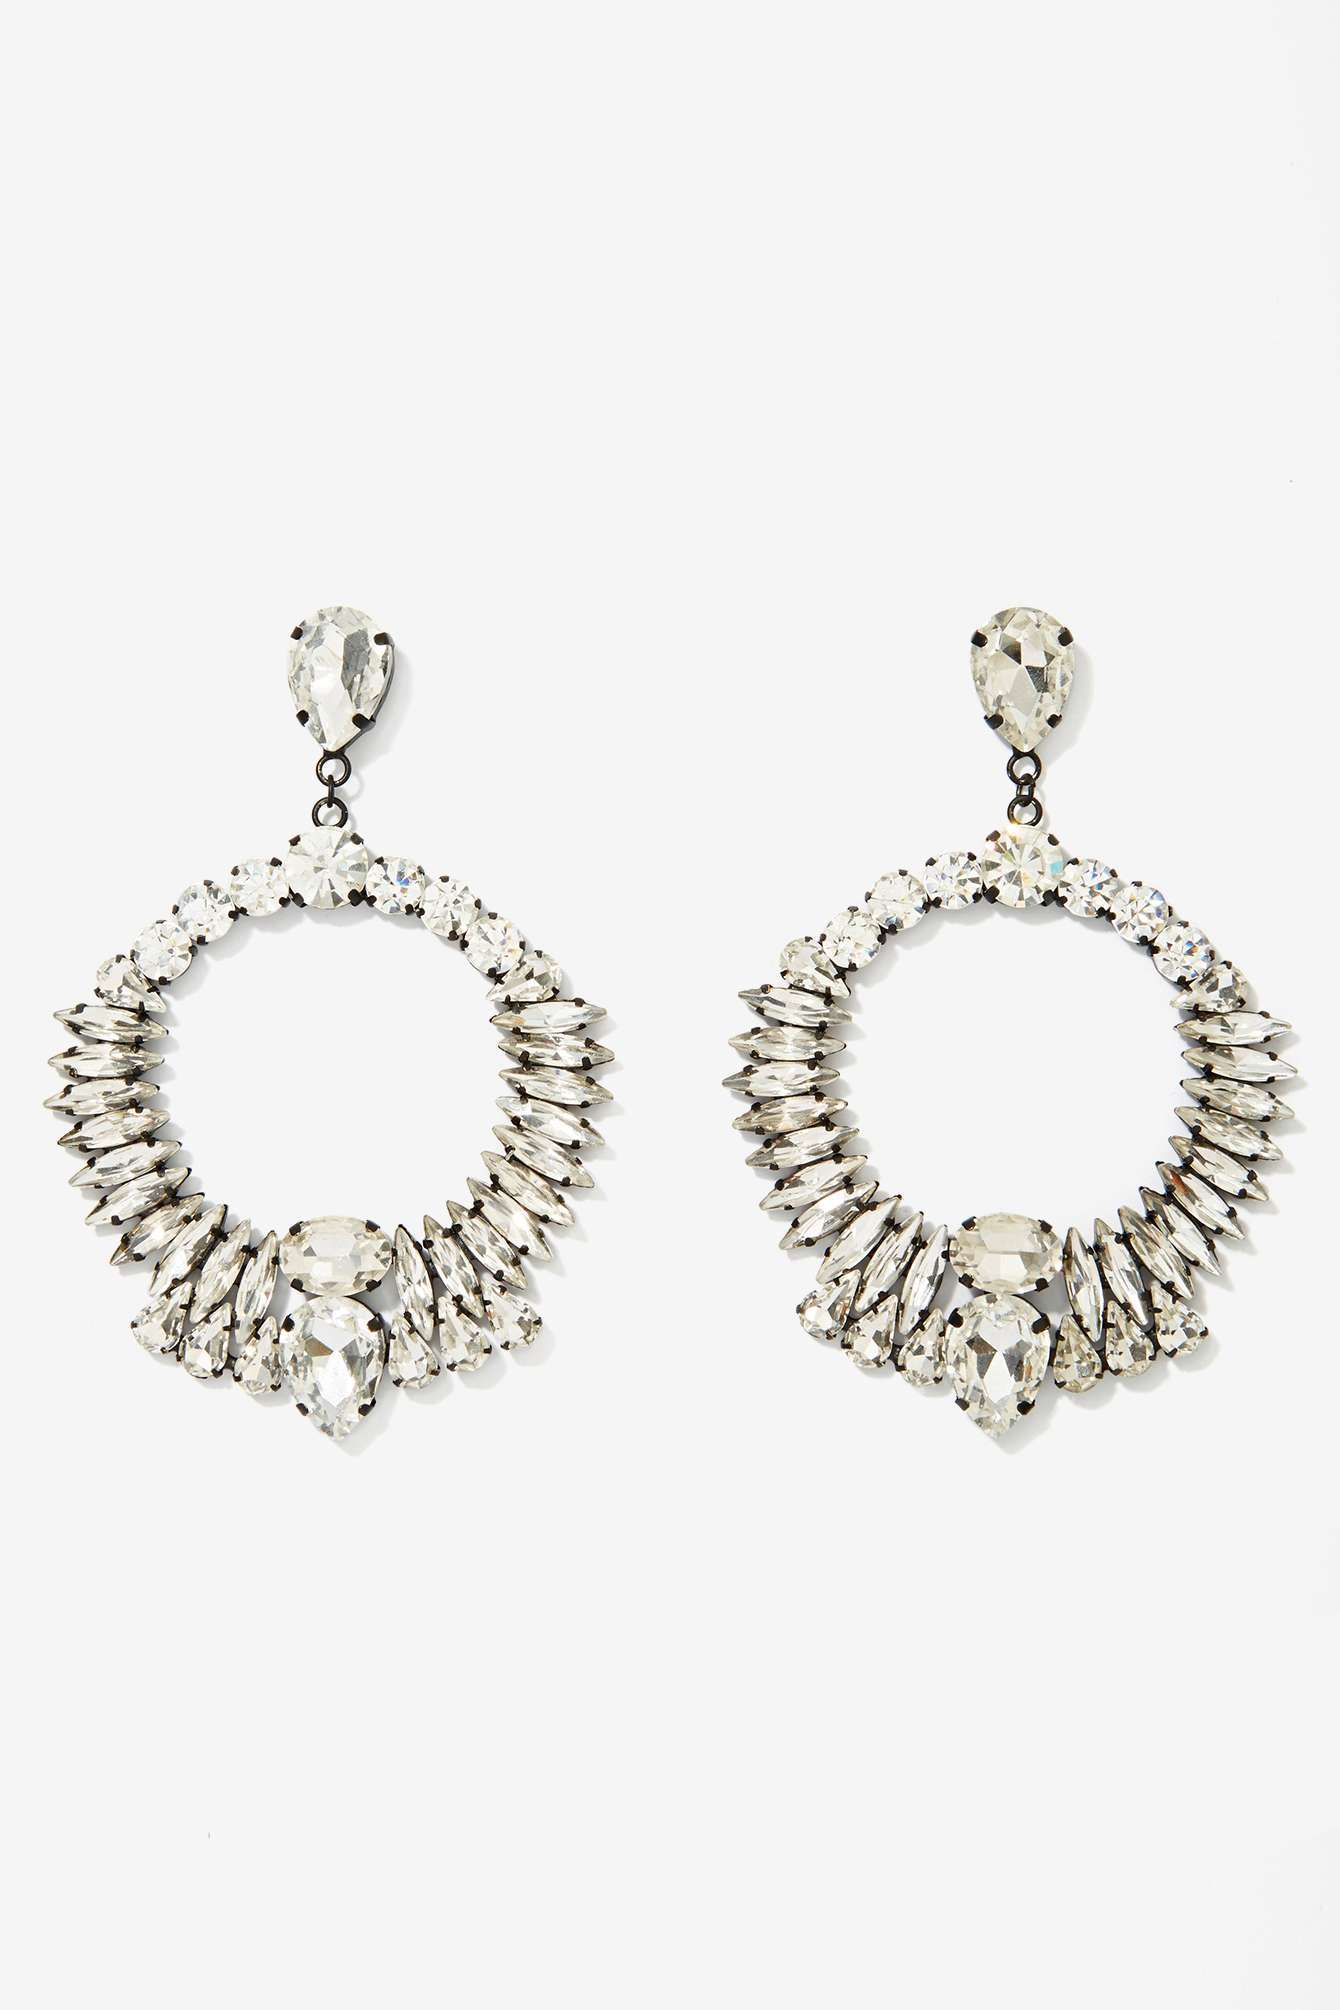 NastyGal Bright Girl Hoop Earring  $35